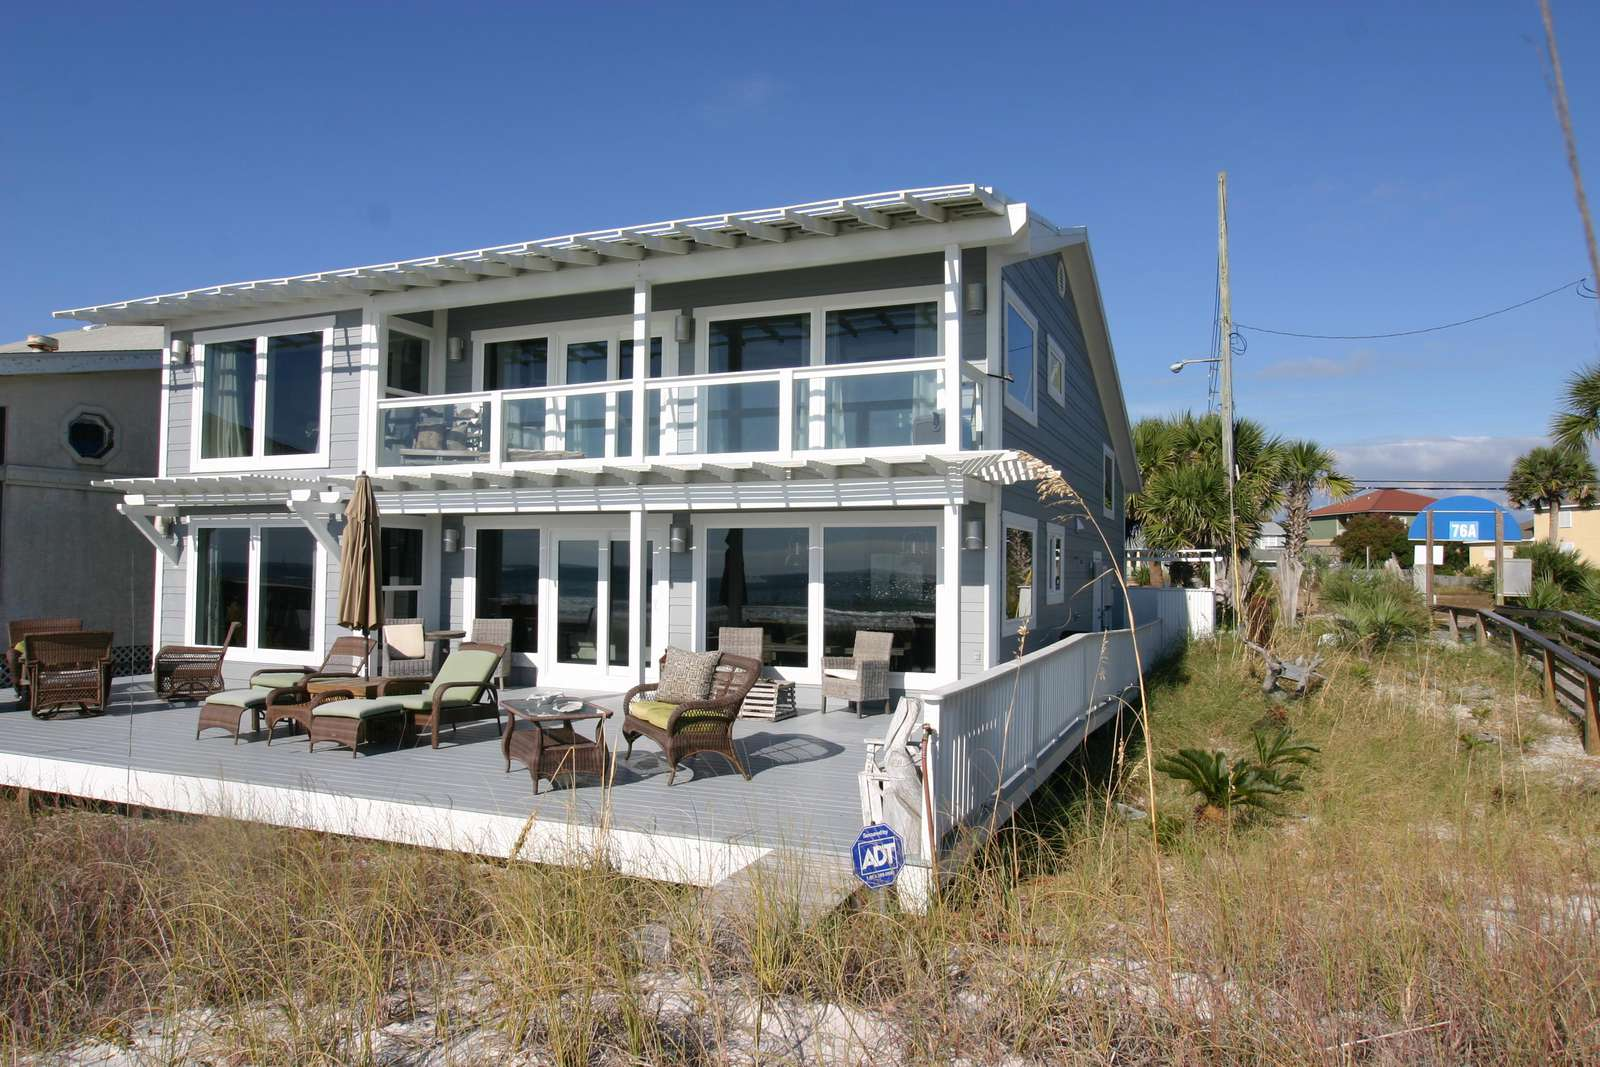 BACK DECK VIEW wedding guest can park and come down access